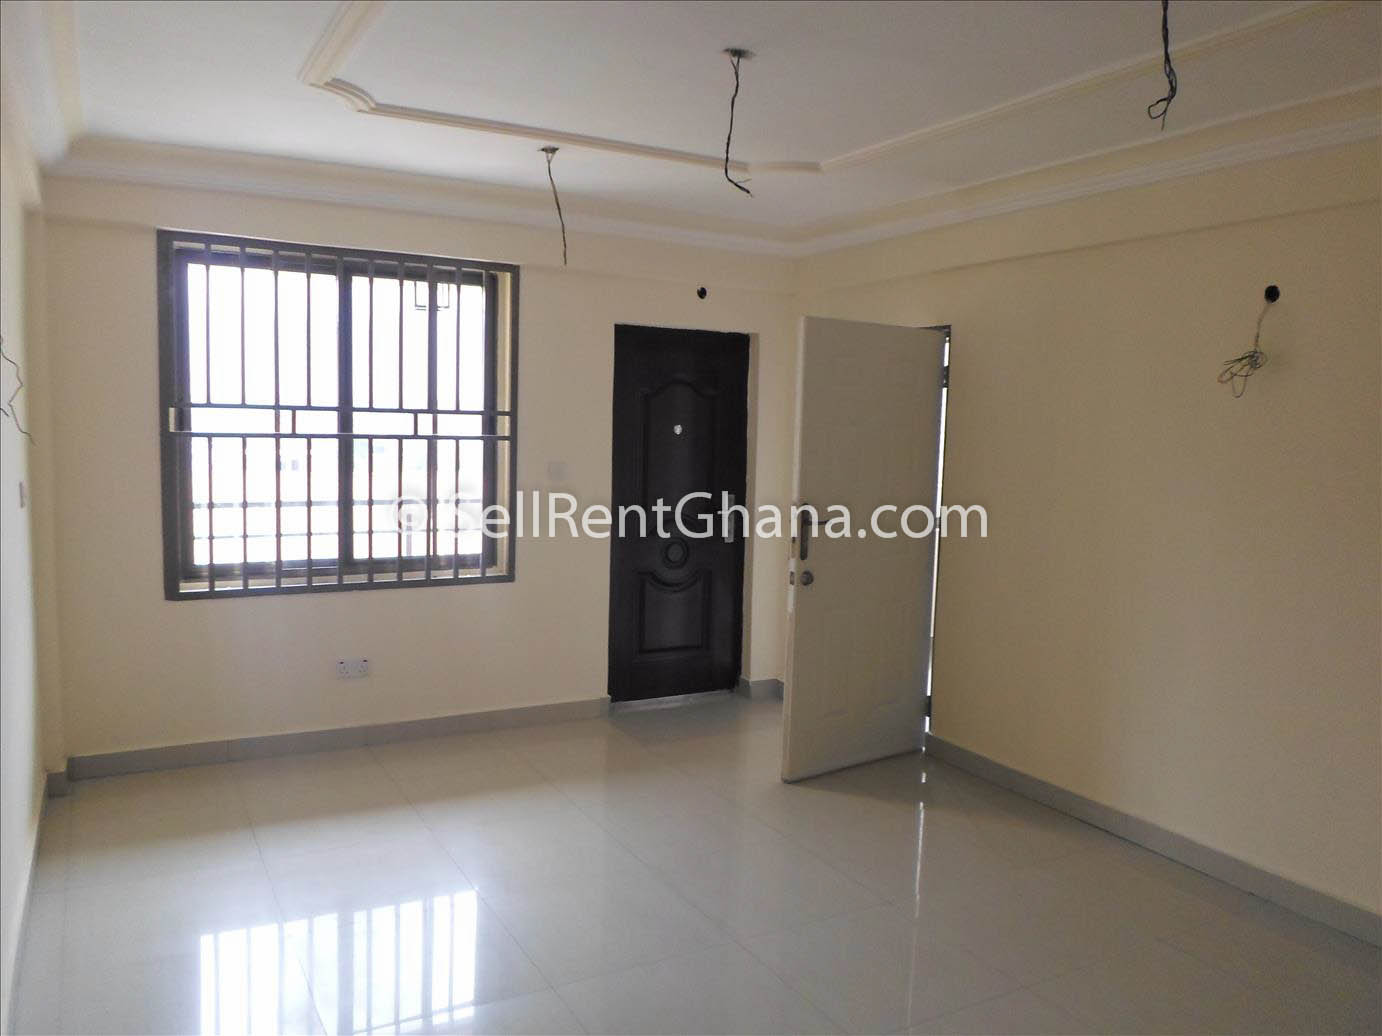 2 Bedroom Apartment For Sale In La SellRent Ghana